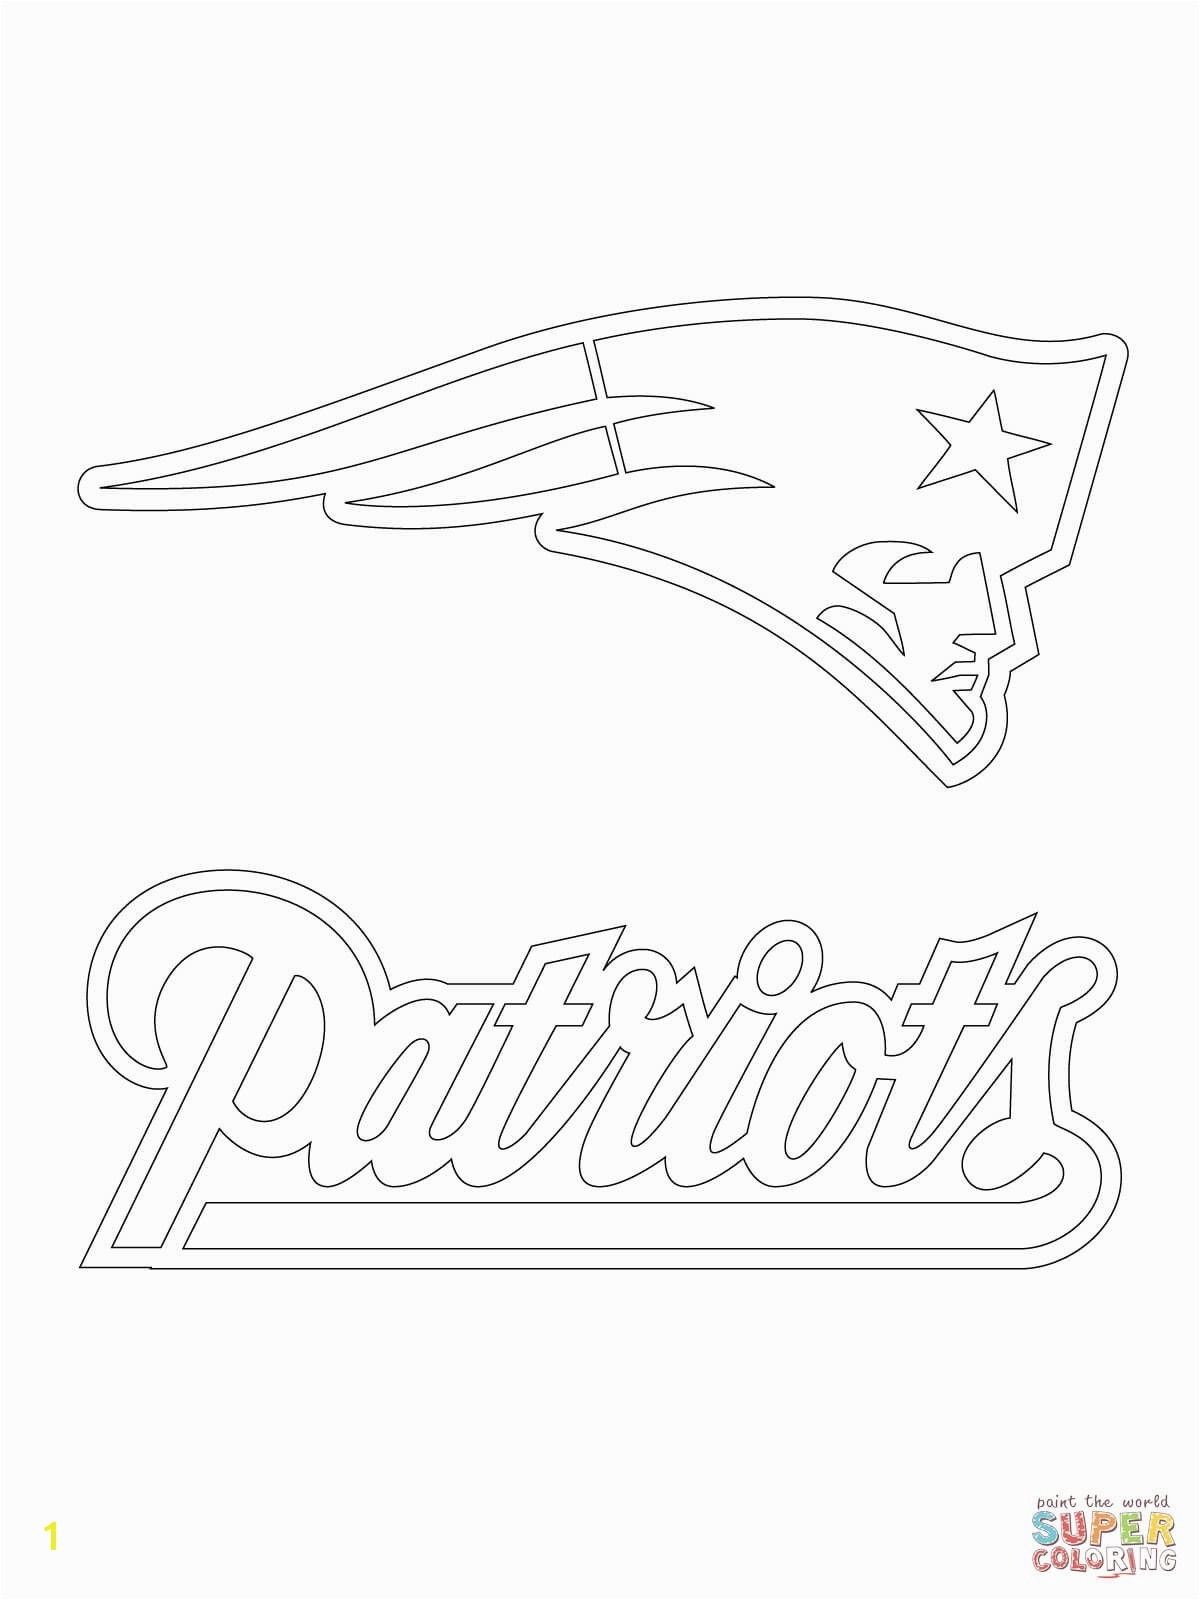 Football Coloring Page New New England Patriots Football Coloring Pages Printable to Tiny New